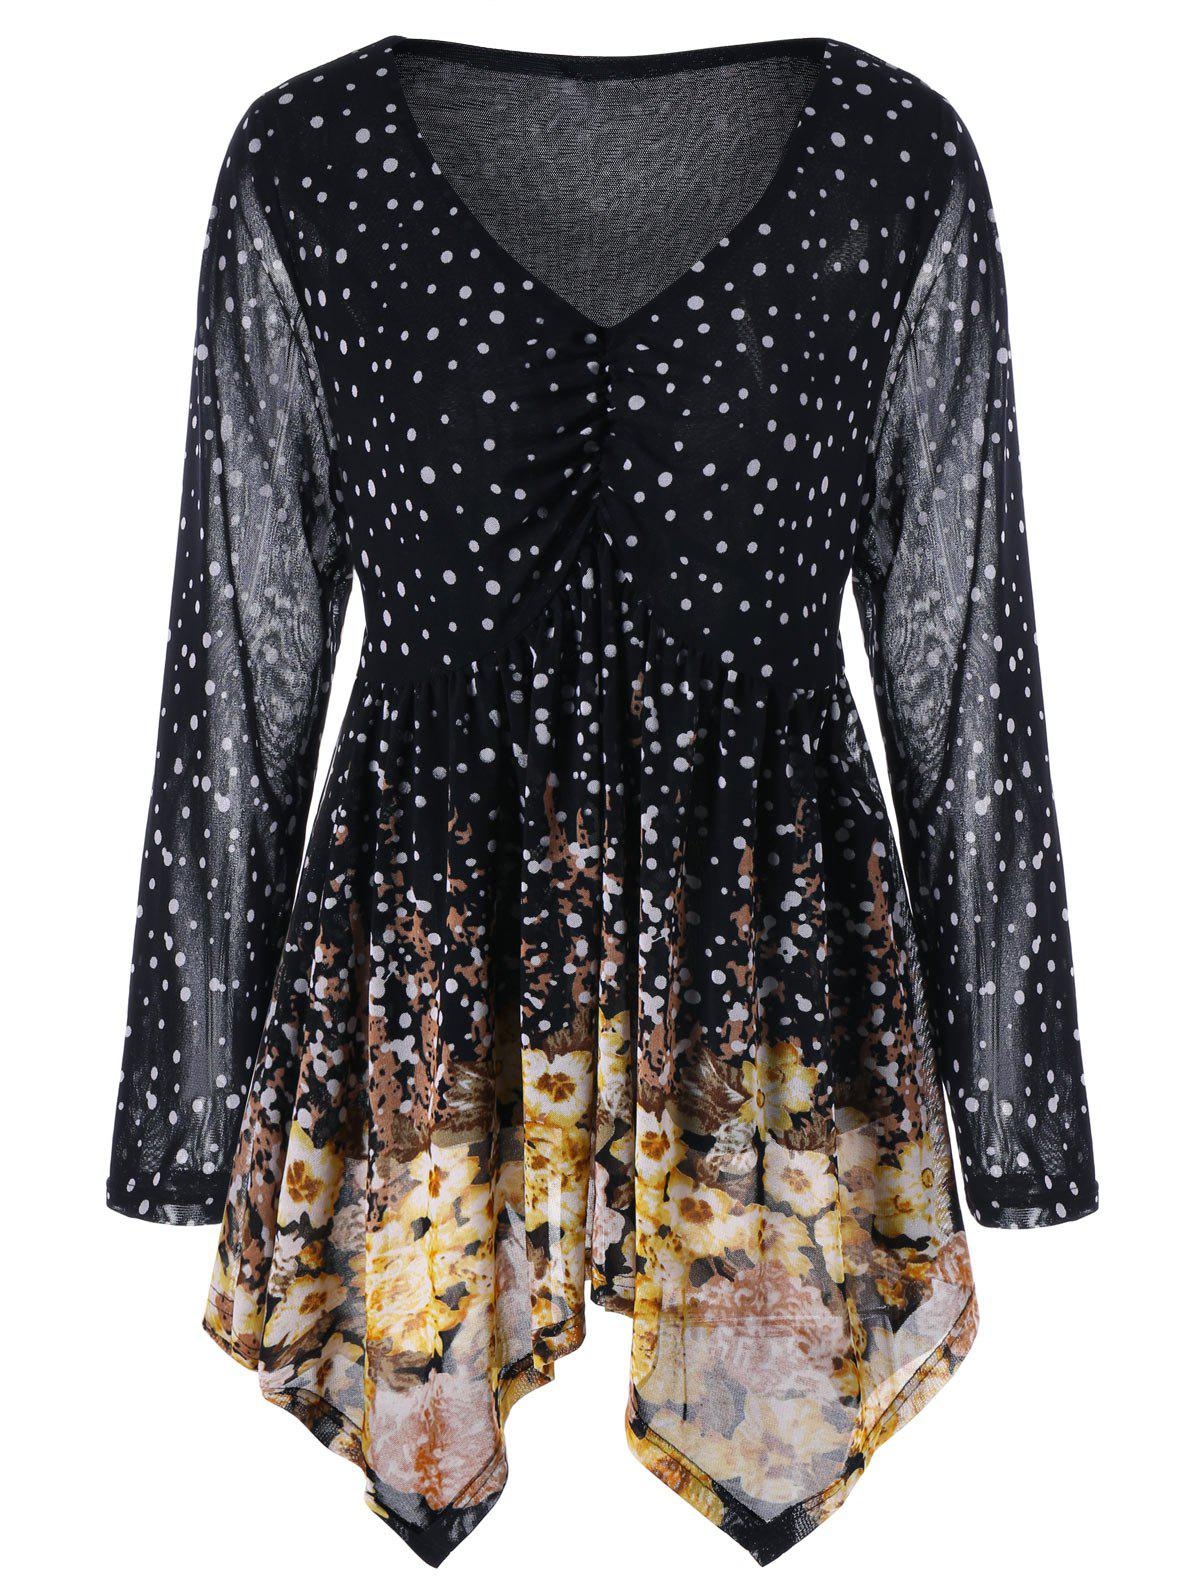 Plus Size V Neck Polka Dot BlouseWOMEN<br><br>Size: XL; Color: BLACK; Material: Polyester; Shirt Length: Long; Sleeve Length: Full; Collar: V-Neck; Style: Casual; Season: Fall,Spring; Pattern Type: Polka Dot; Weight: 0.2800kg; Package Contents: 1 x Blouse;